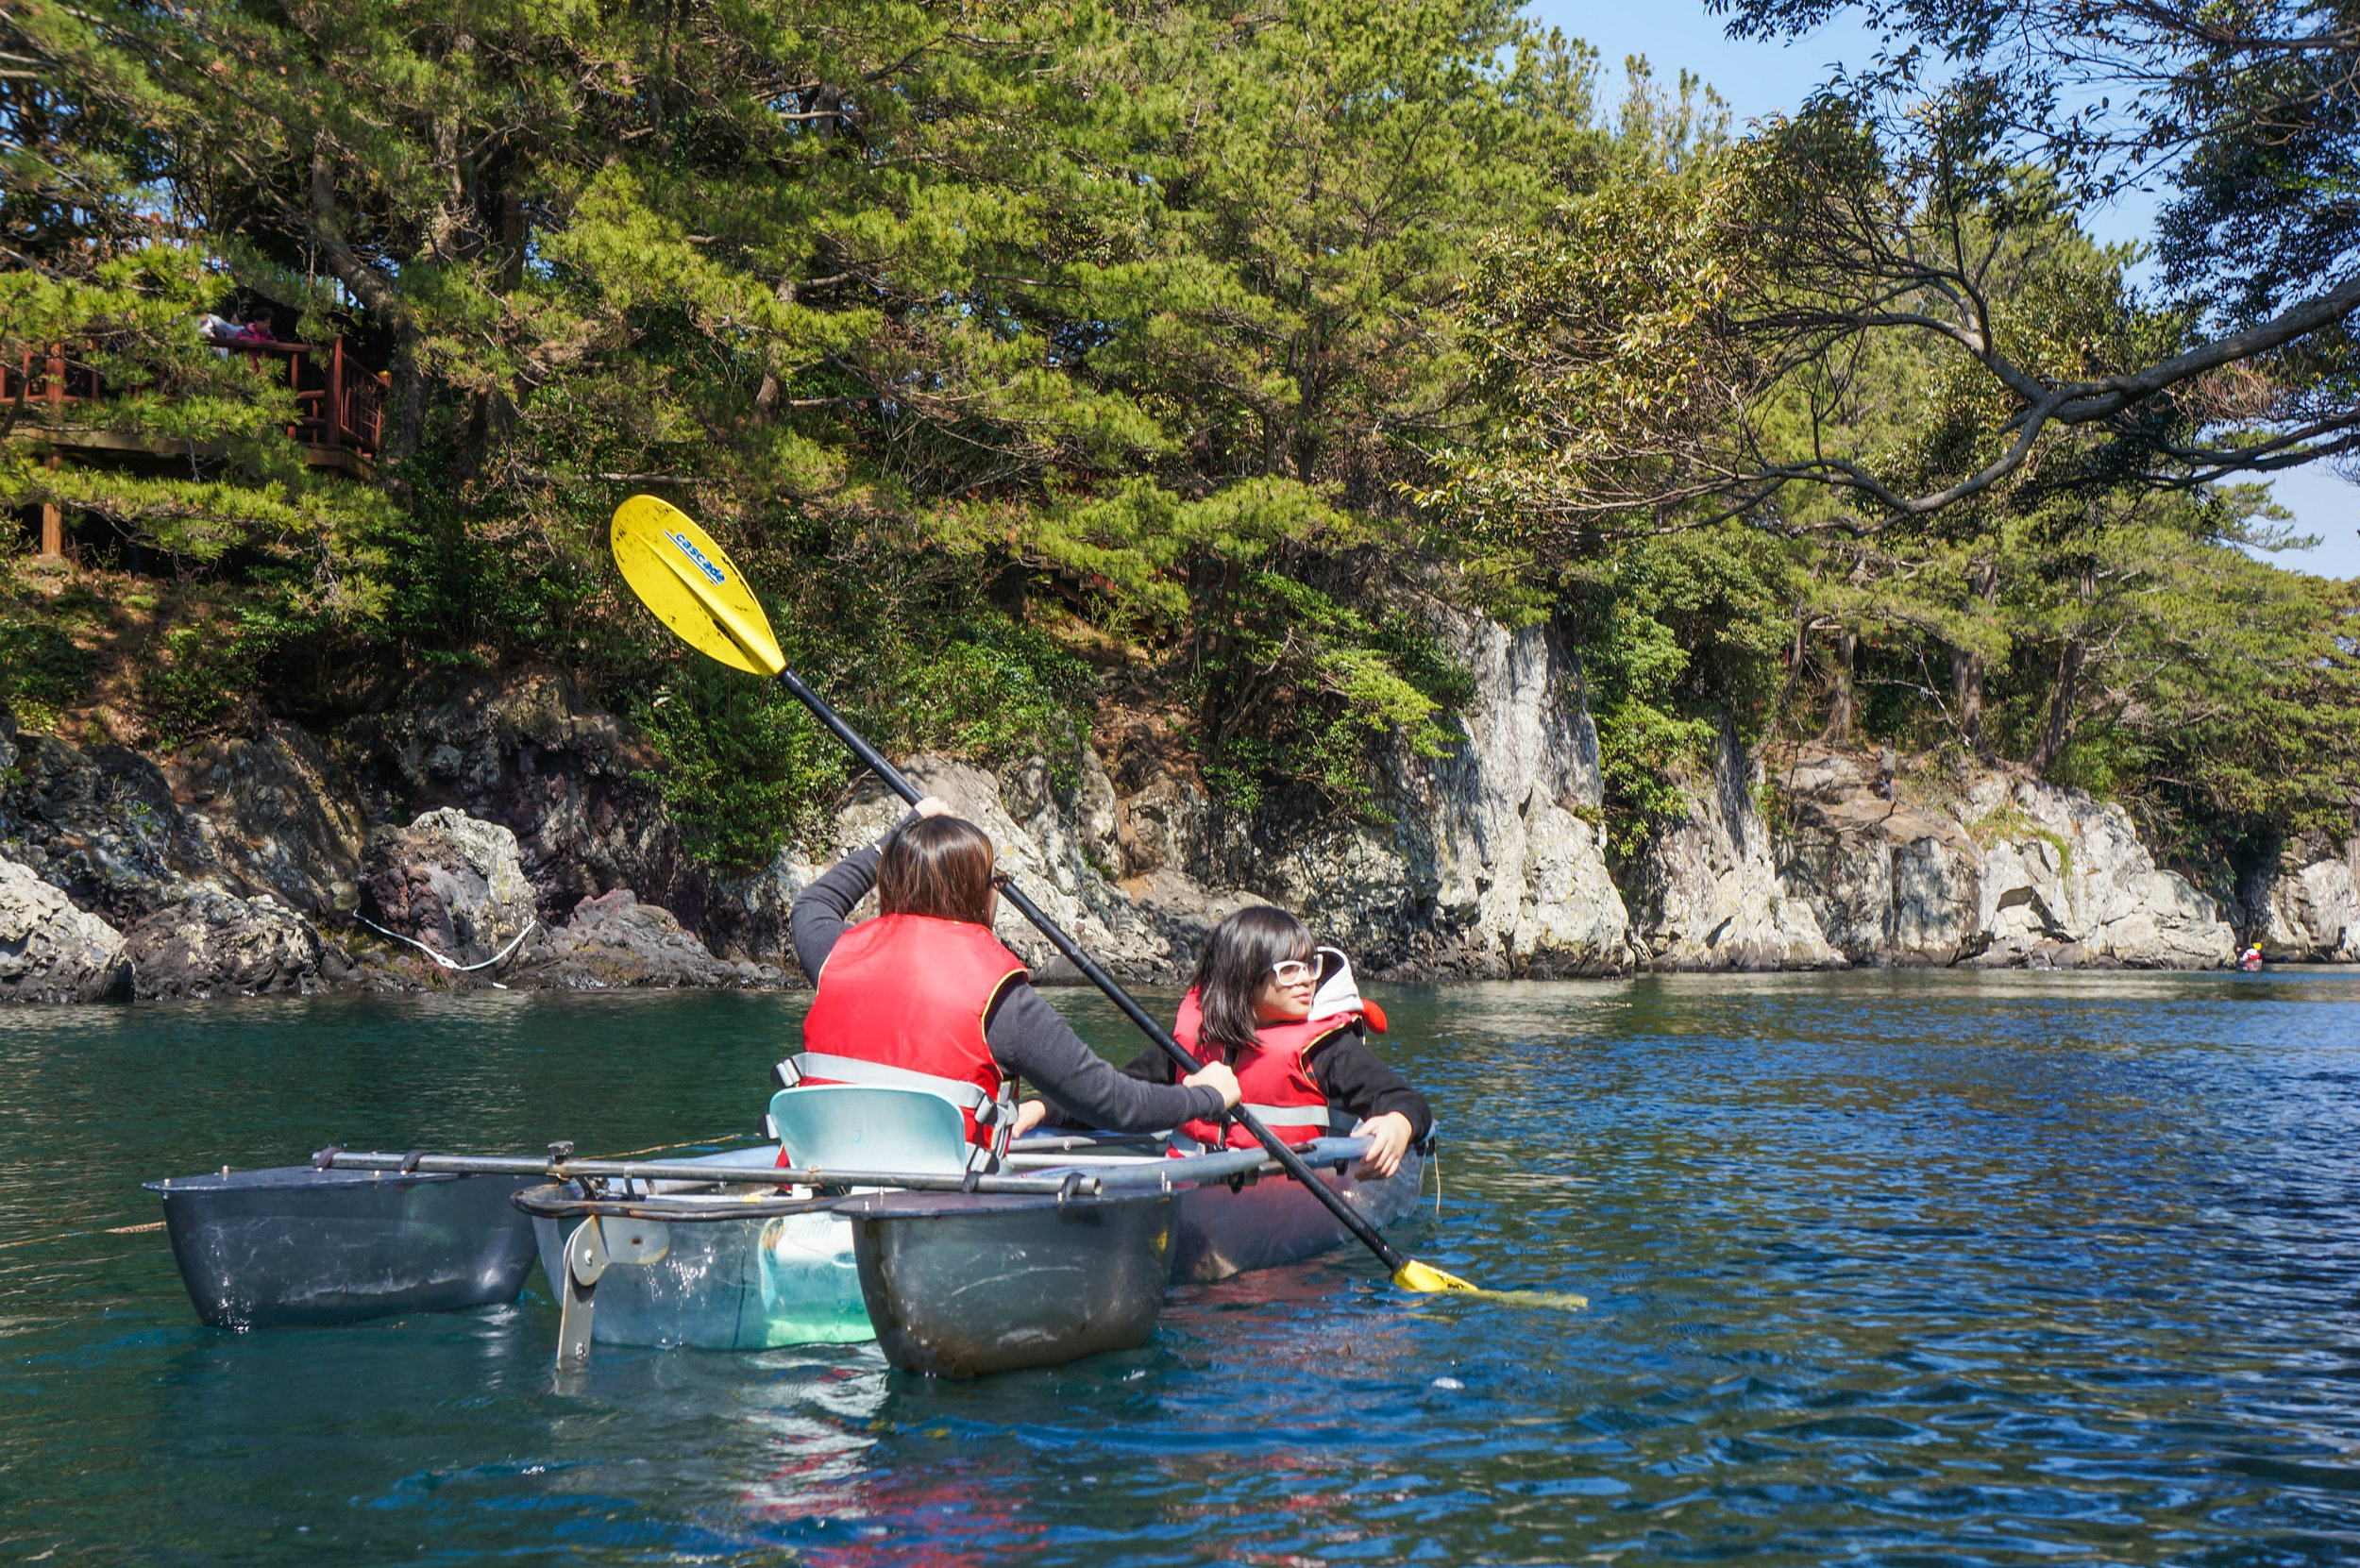 Our first time to be on a clear kayak. :) The estuary was beautiful.